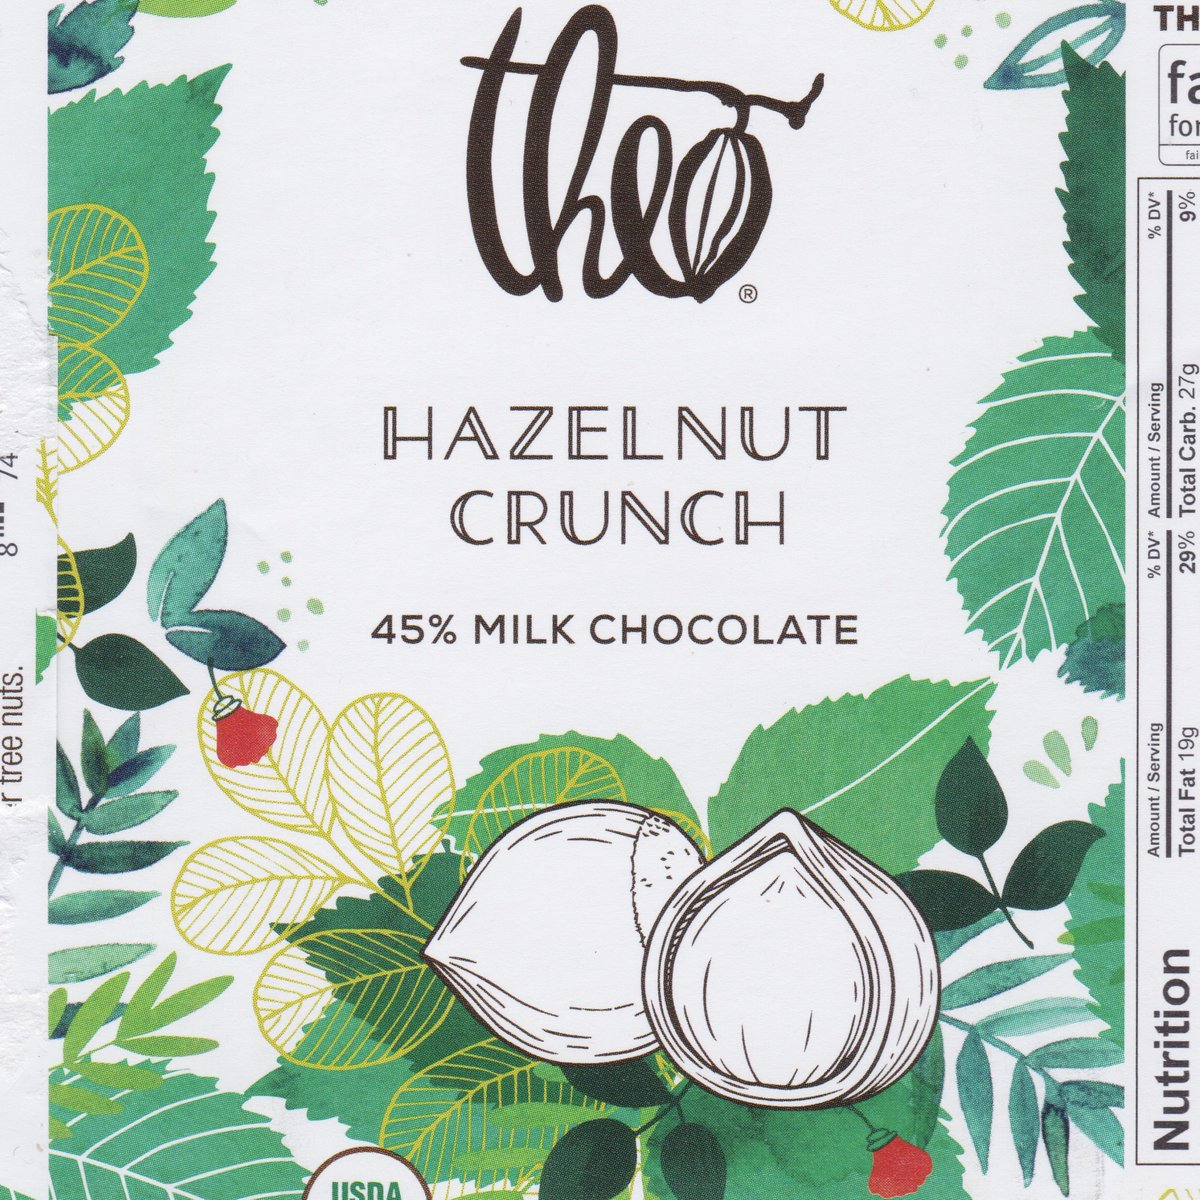 Theo crunchy brittle with hazelnuts & a pinch of salt in creamy milk chocolate